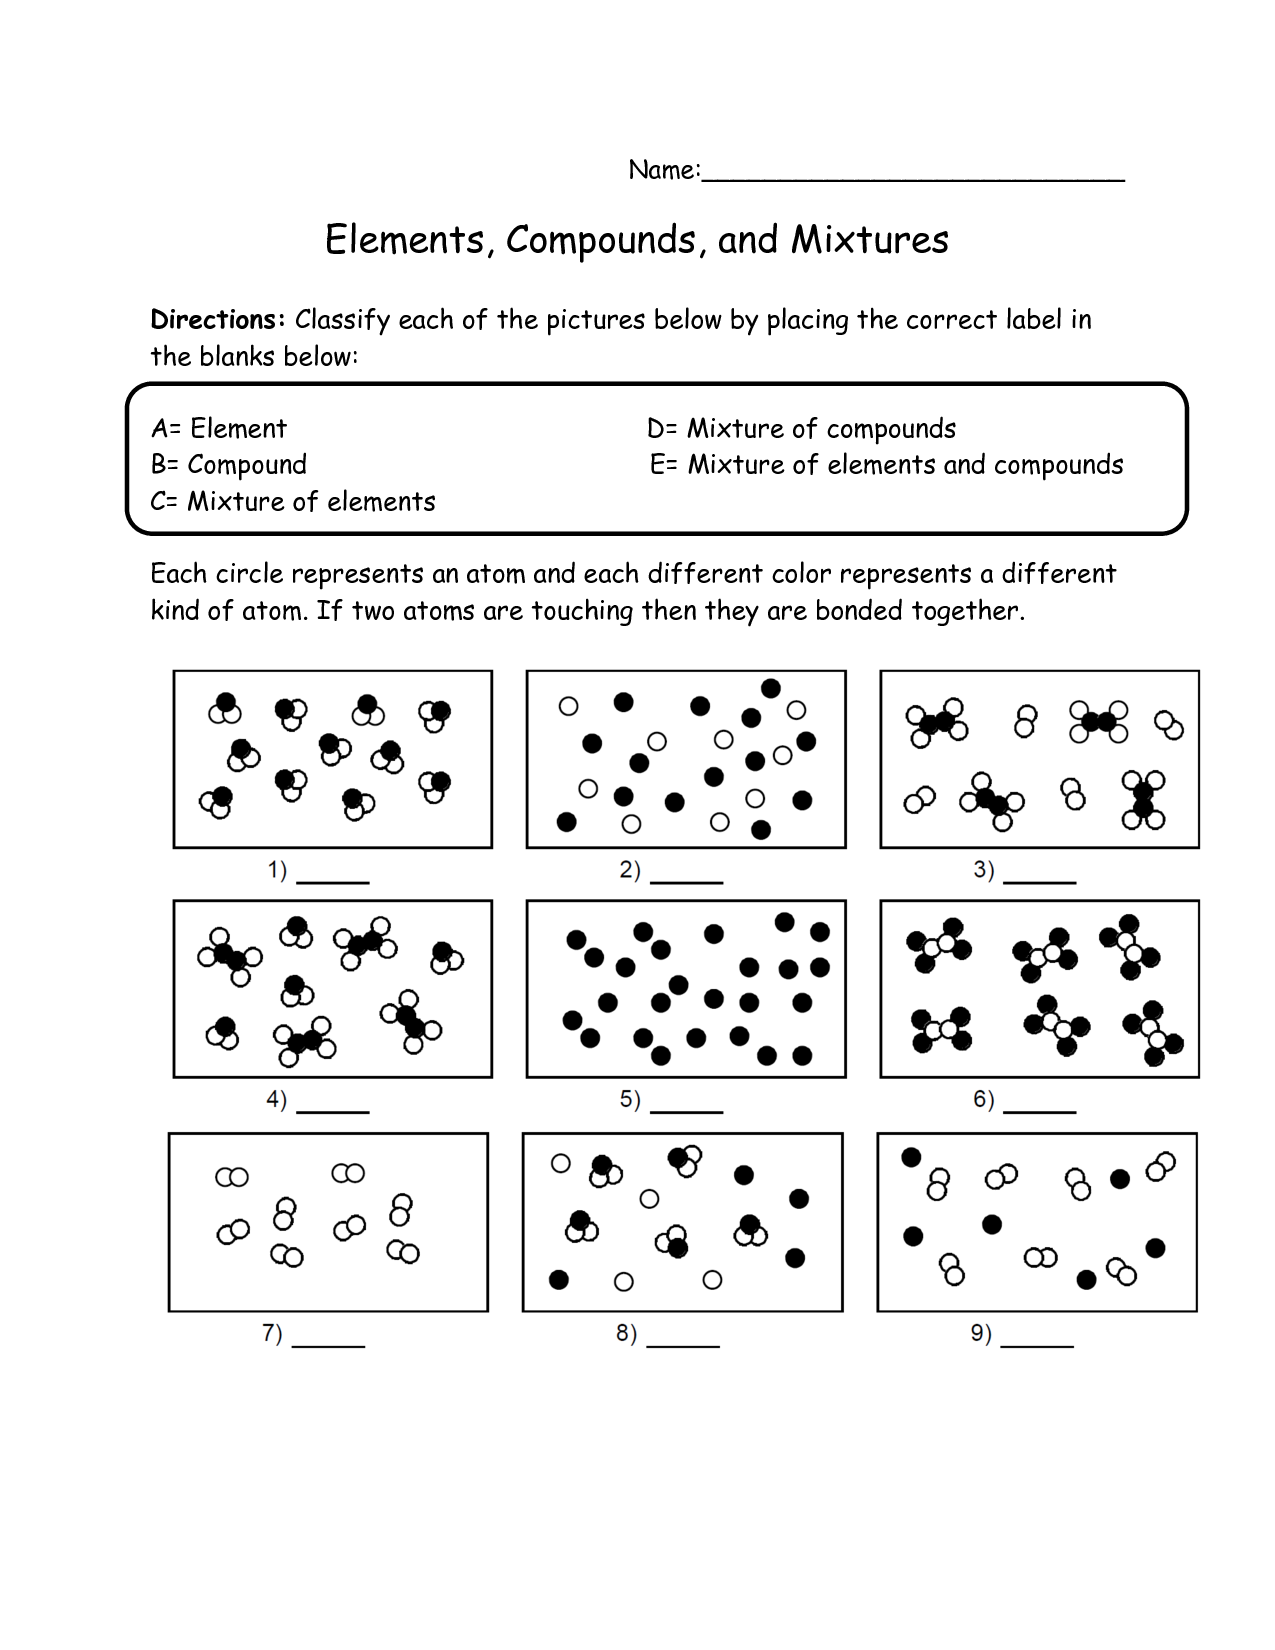 Elements Compound And Mixtures Worksheet - Thimothy Worksheet